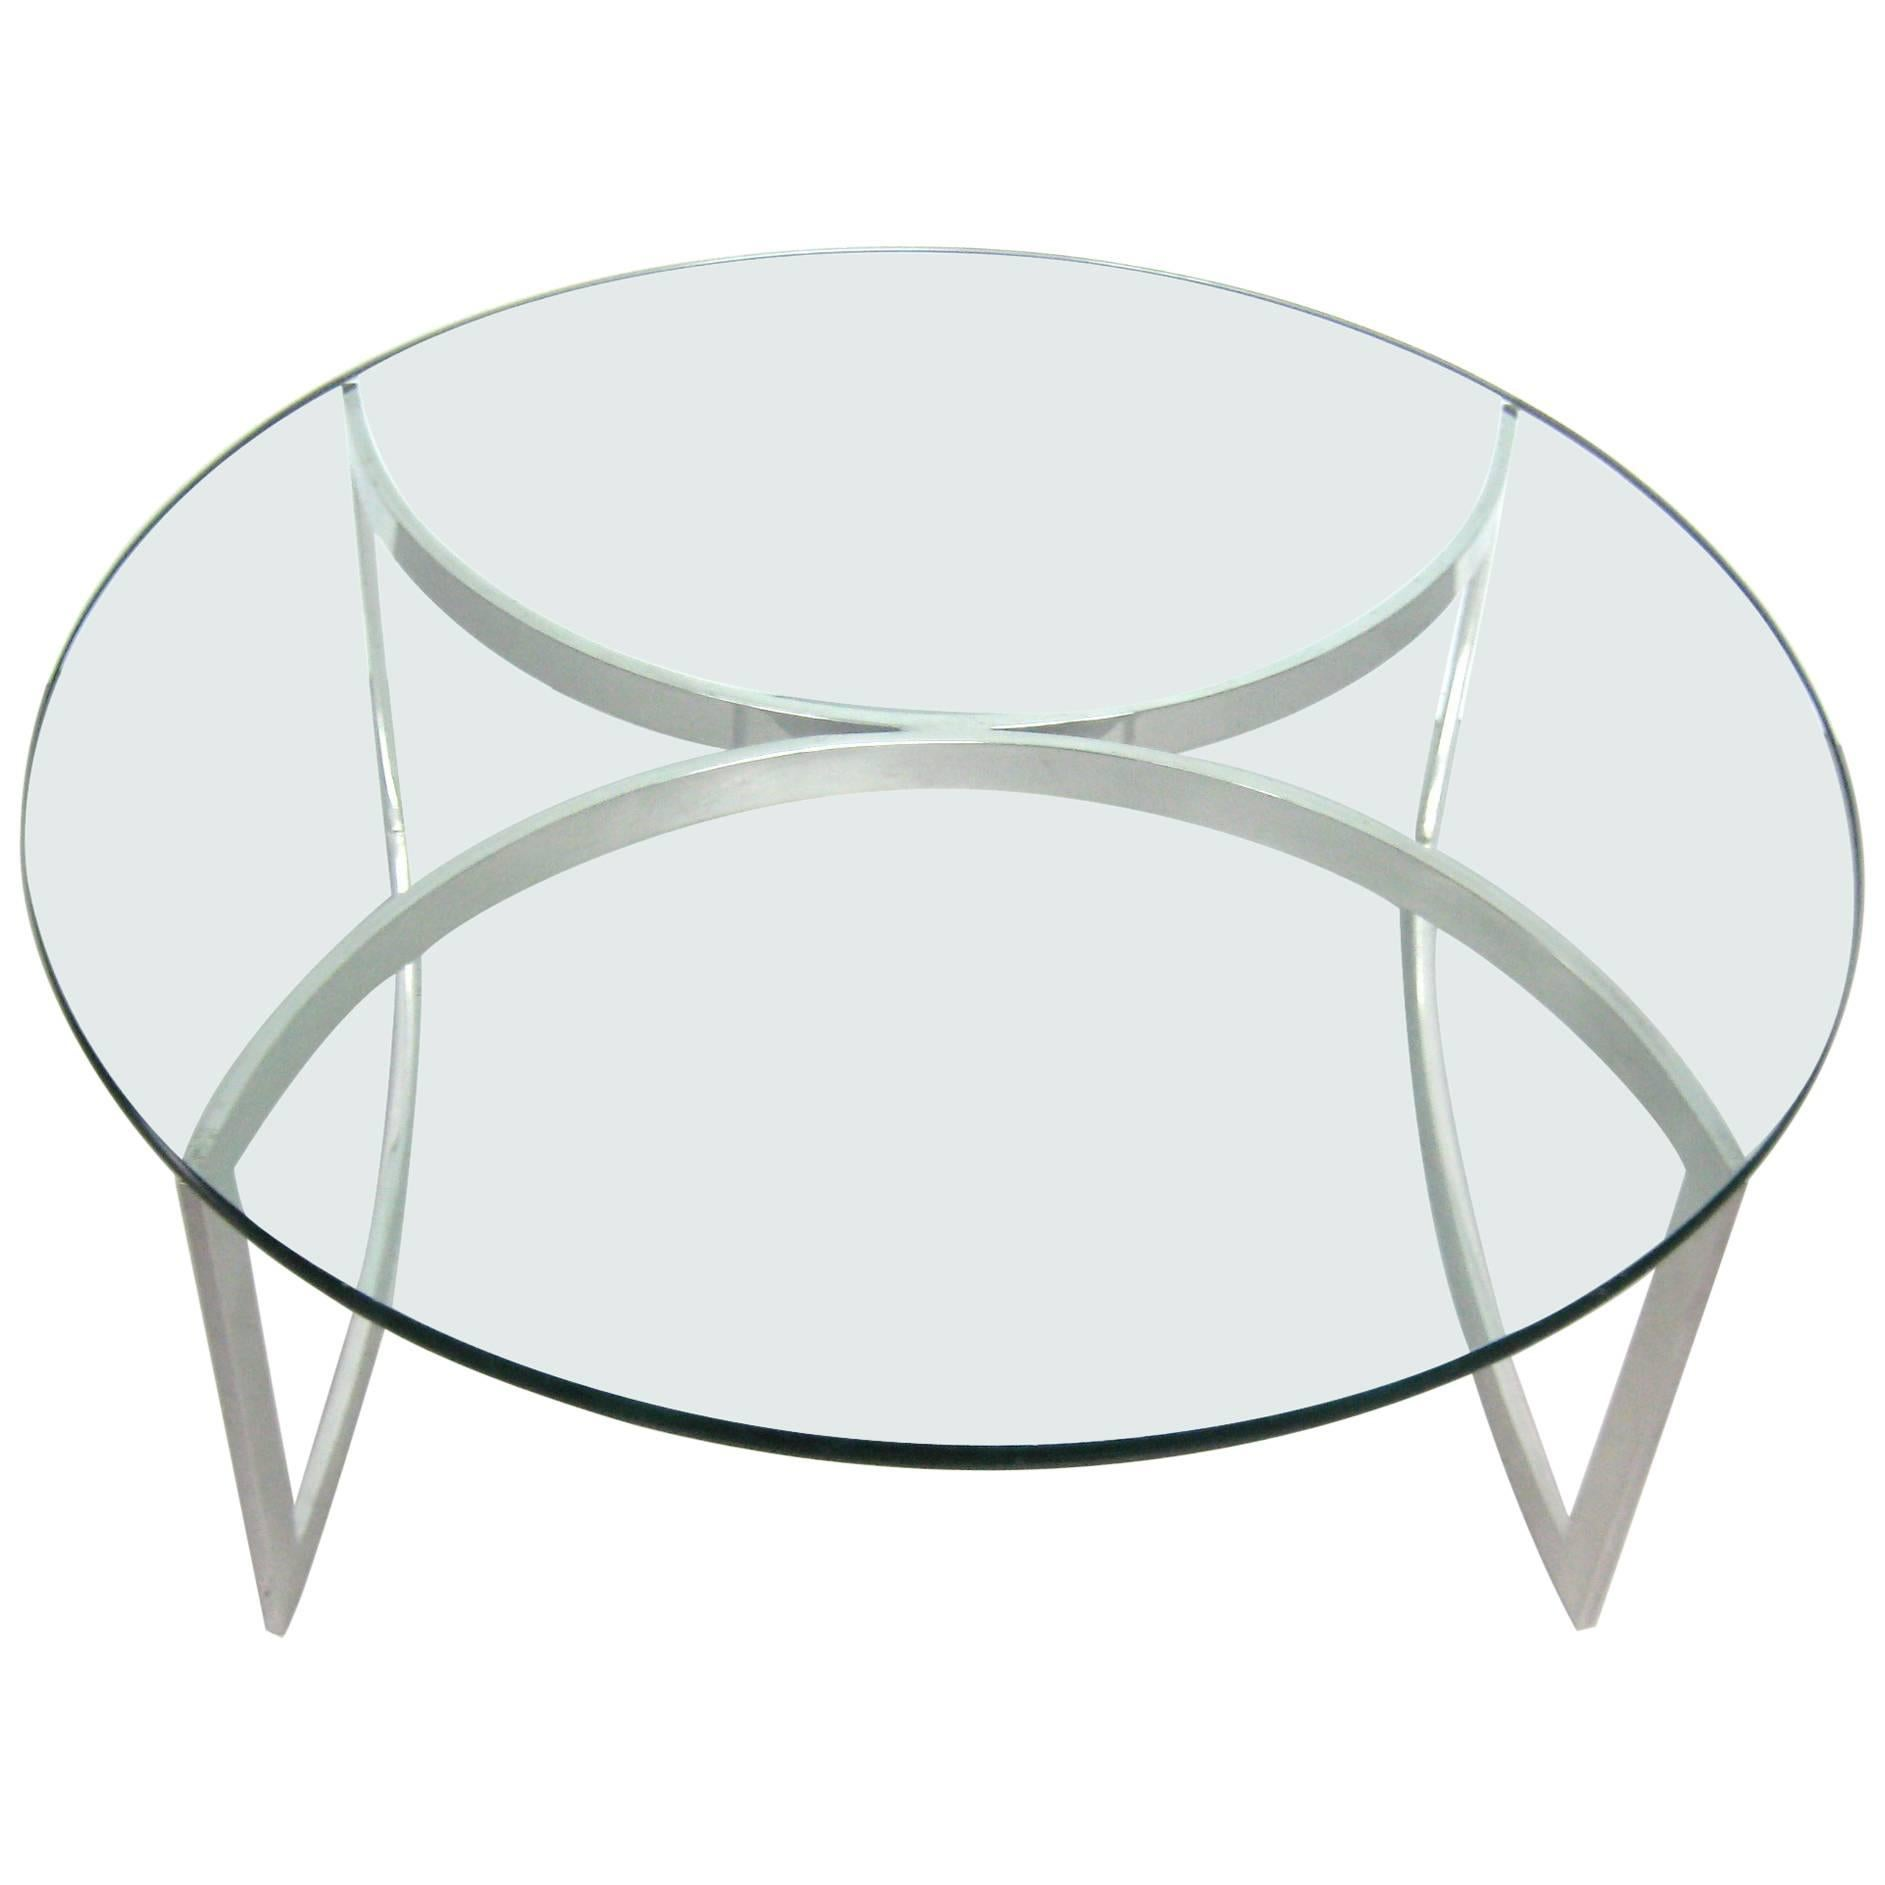 Exceptionnel Late Mid Century Modern 1970s Stainless Steel Round Glass Top Coffee Table  For Sale